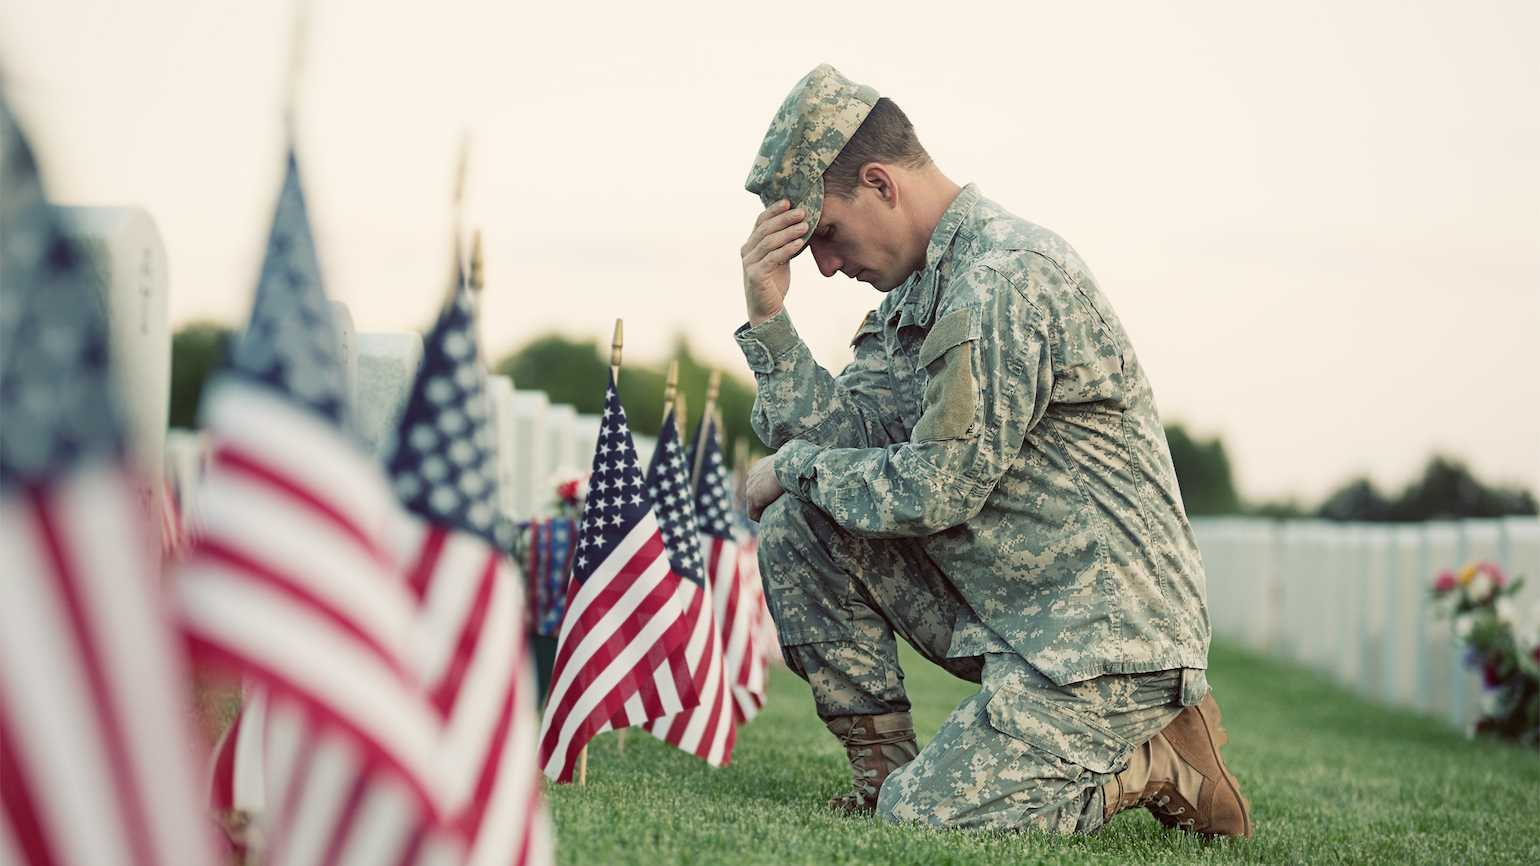 On Memorial Day, honoring those who gave their lives in service to their country